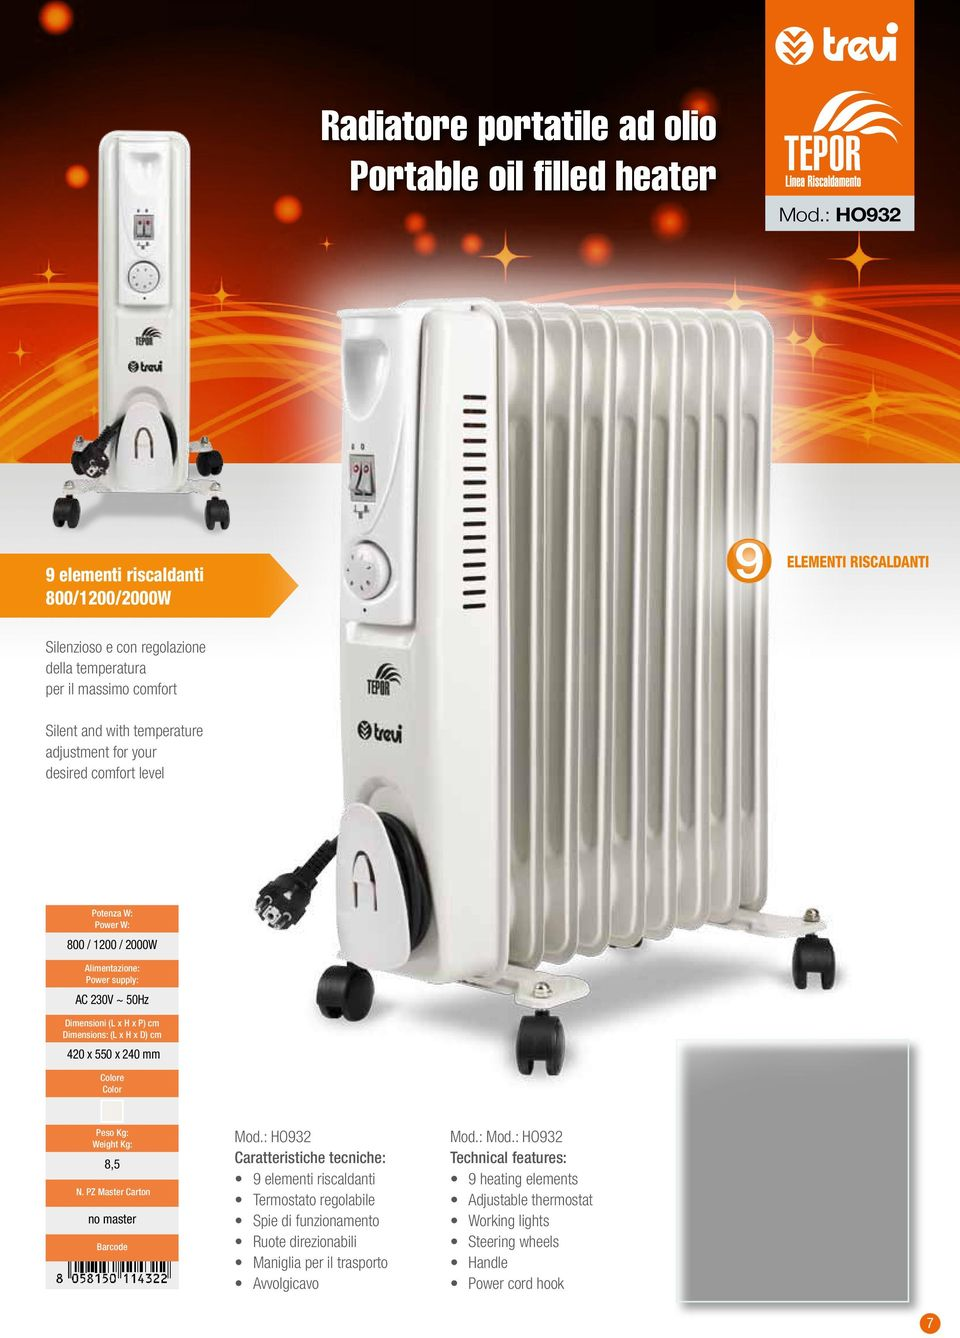 Silent and with temperature adjustment for your desired comfort level 800 / 1200 / 2000W 420 x 550 x 240 mm 8,5 no master Mod.